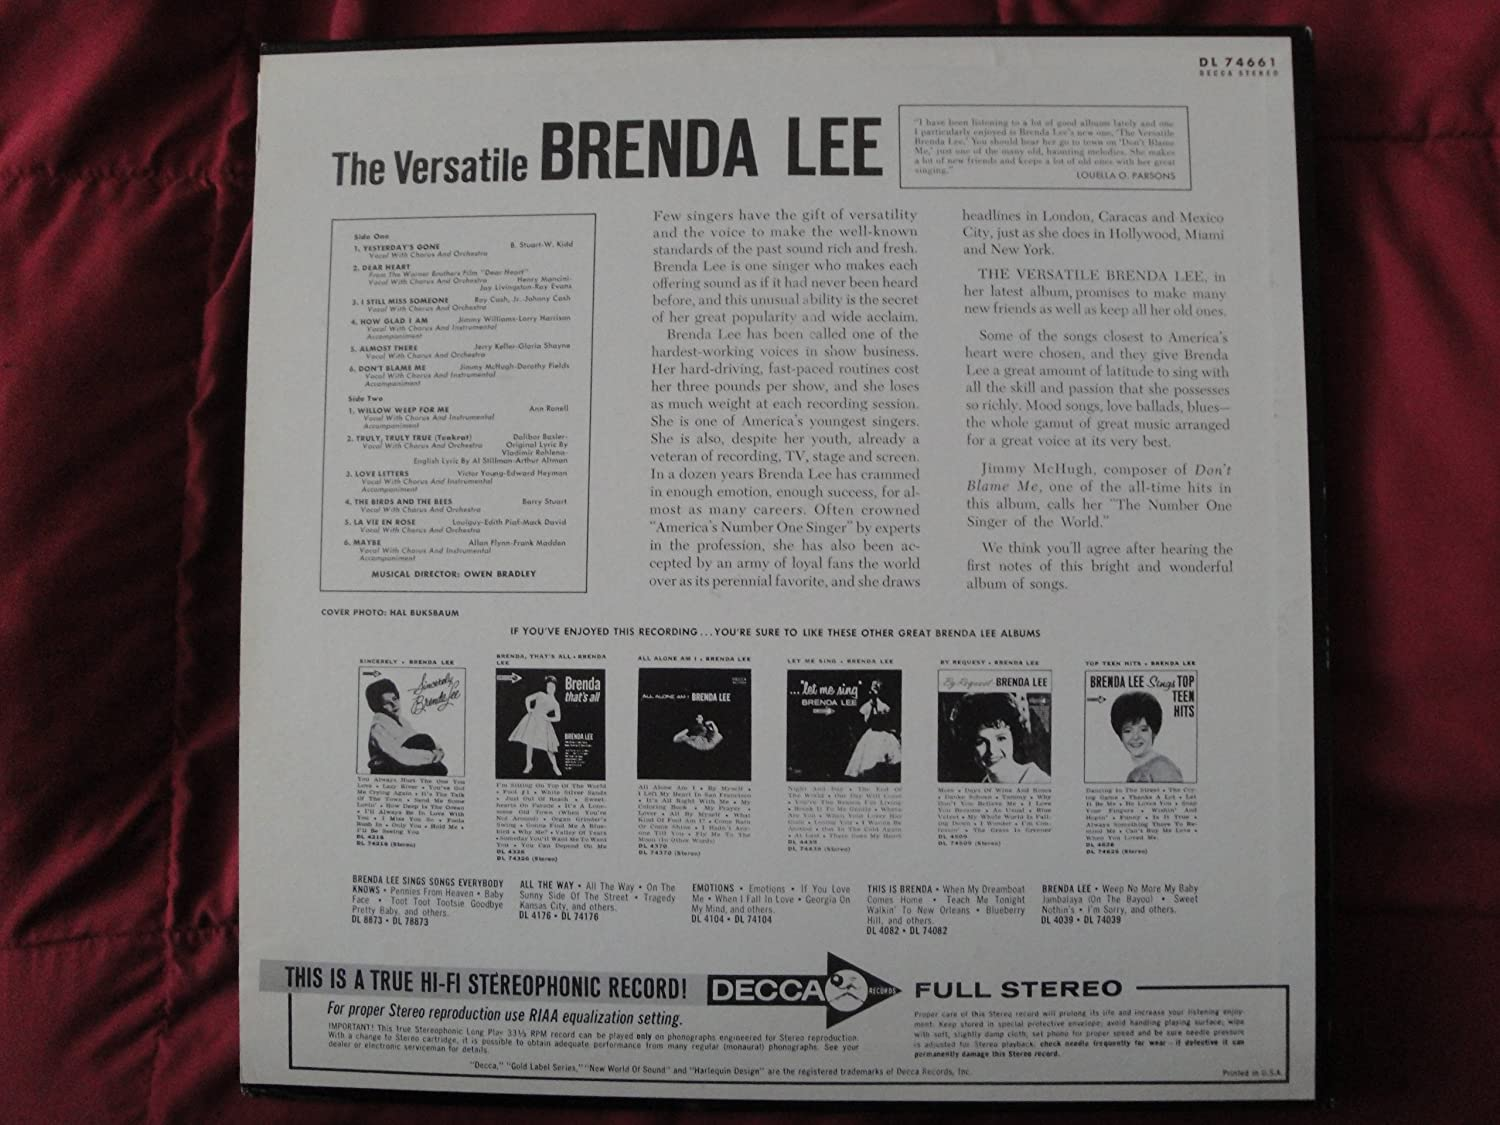 Brenda Lee - Brenda Lee - The Versatile Brenda Lee - Lp Vinyl Record - Amazon.com Music